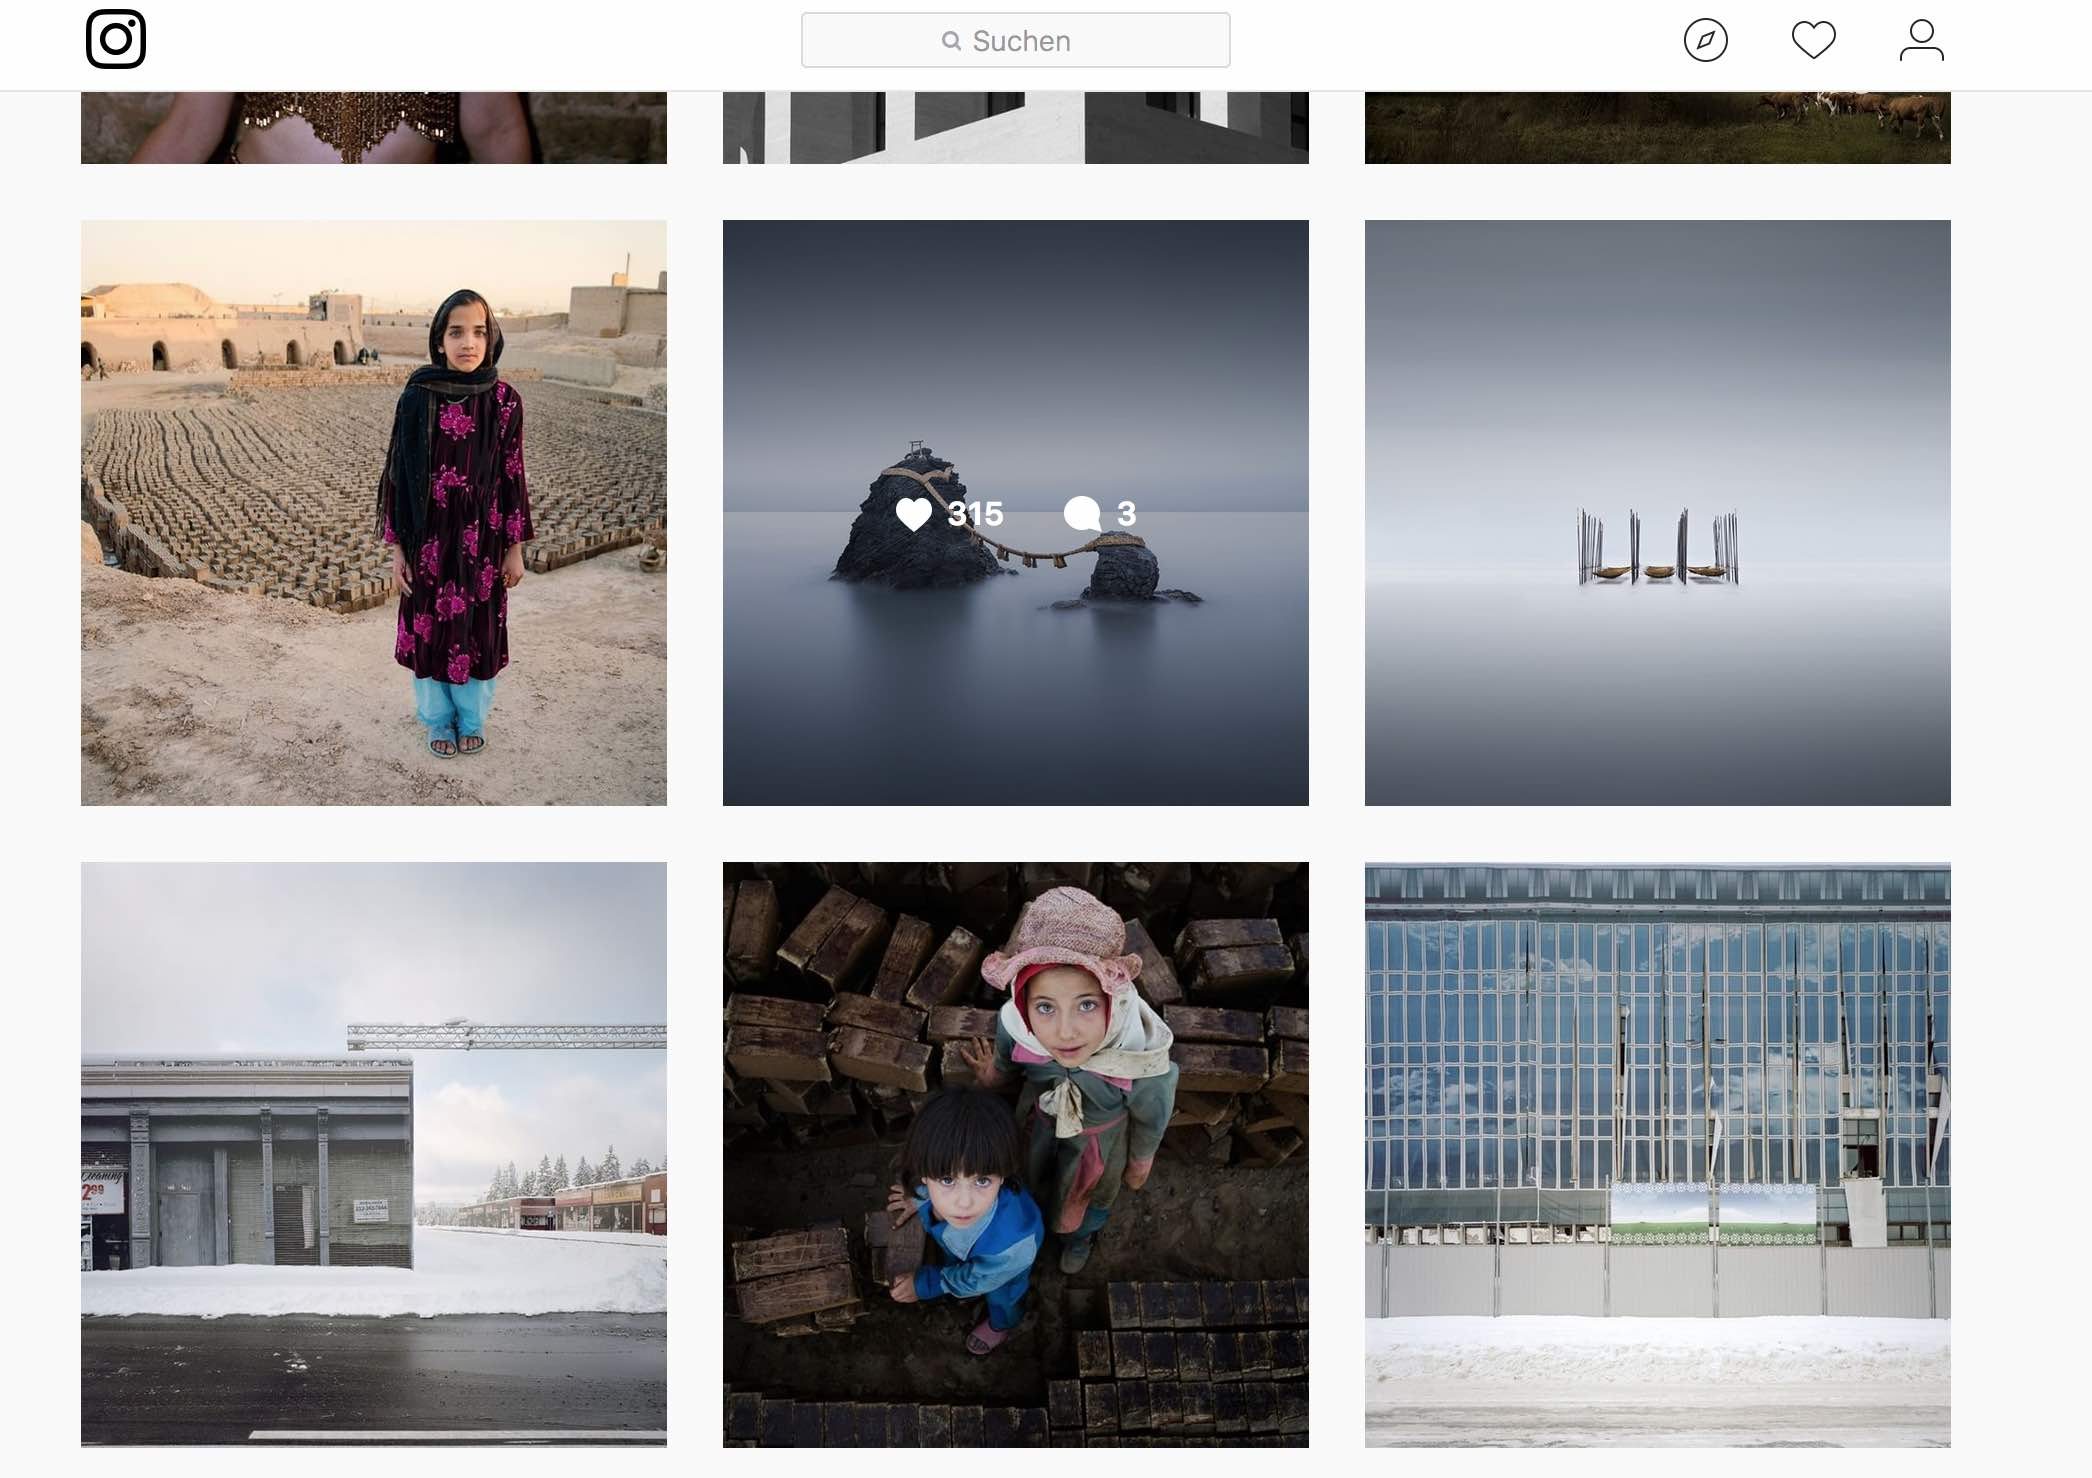 Felix Schoeller Photo Award now on Instagram!